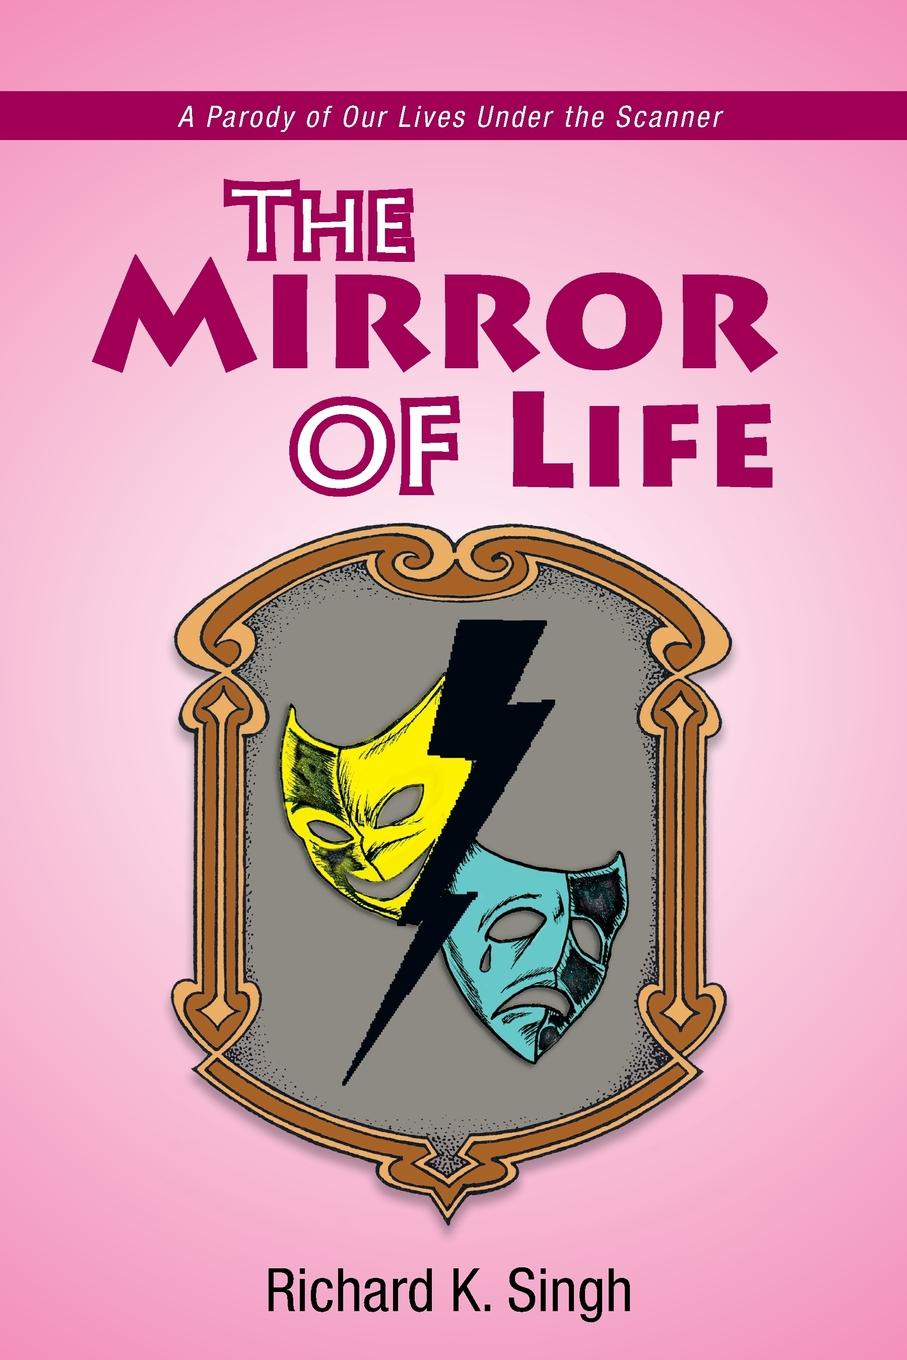 купить Richard K. Singh The Mirror of Life. A Parody of Our Lives Under the Scanner: A Parody of Our Lives Under the Scanner по цене 1764 рублей